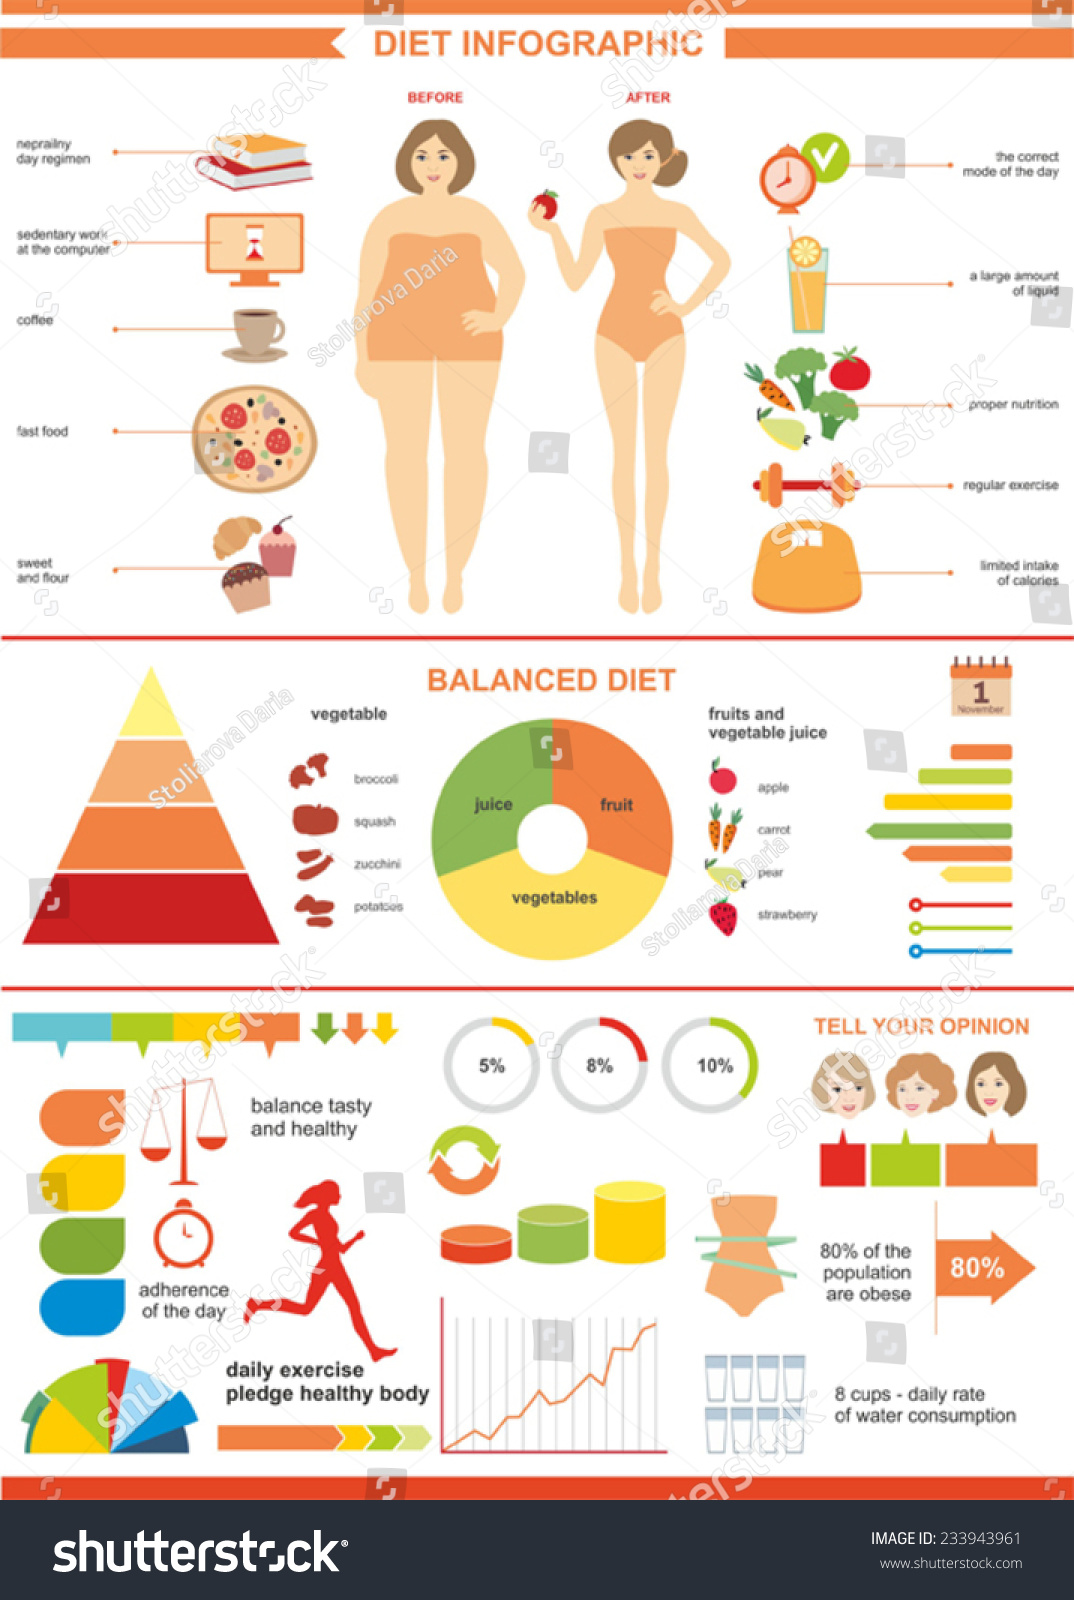 Diet Infographic Healthy Lifestyle Healthy Eating Stock Vector Royalty Free 233943961